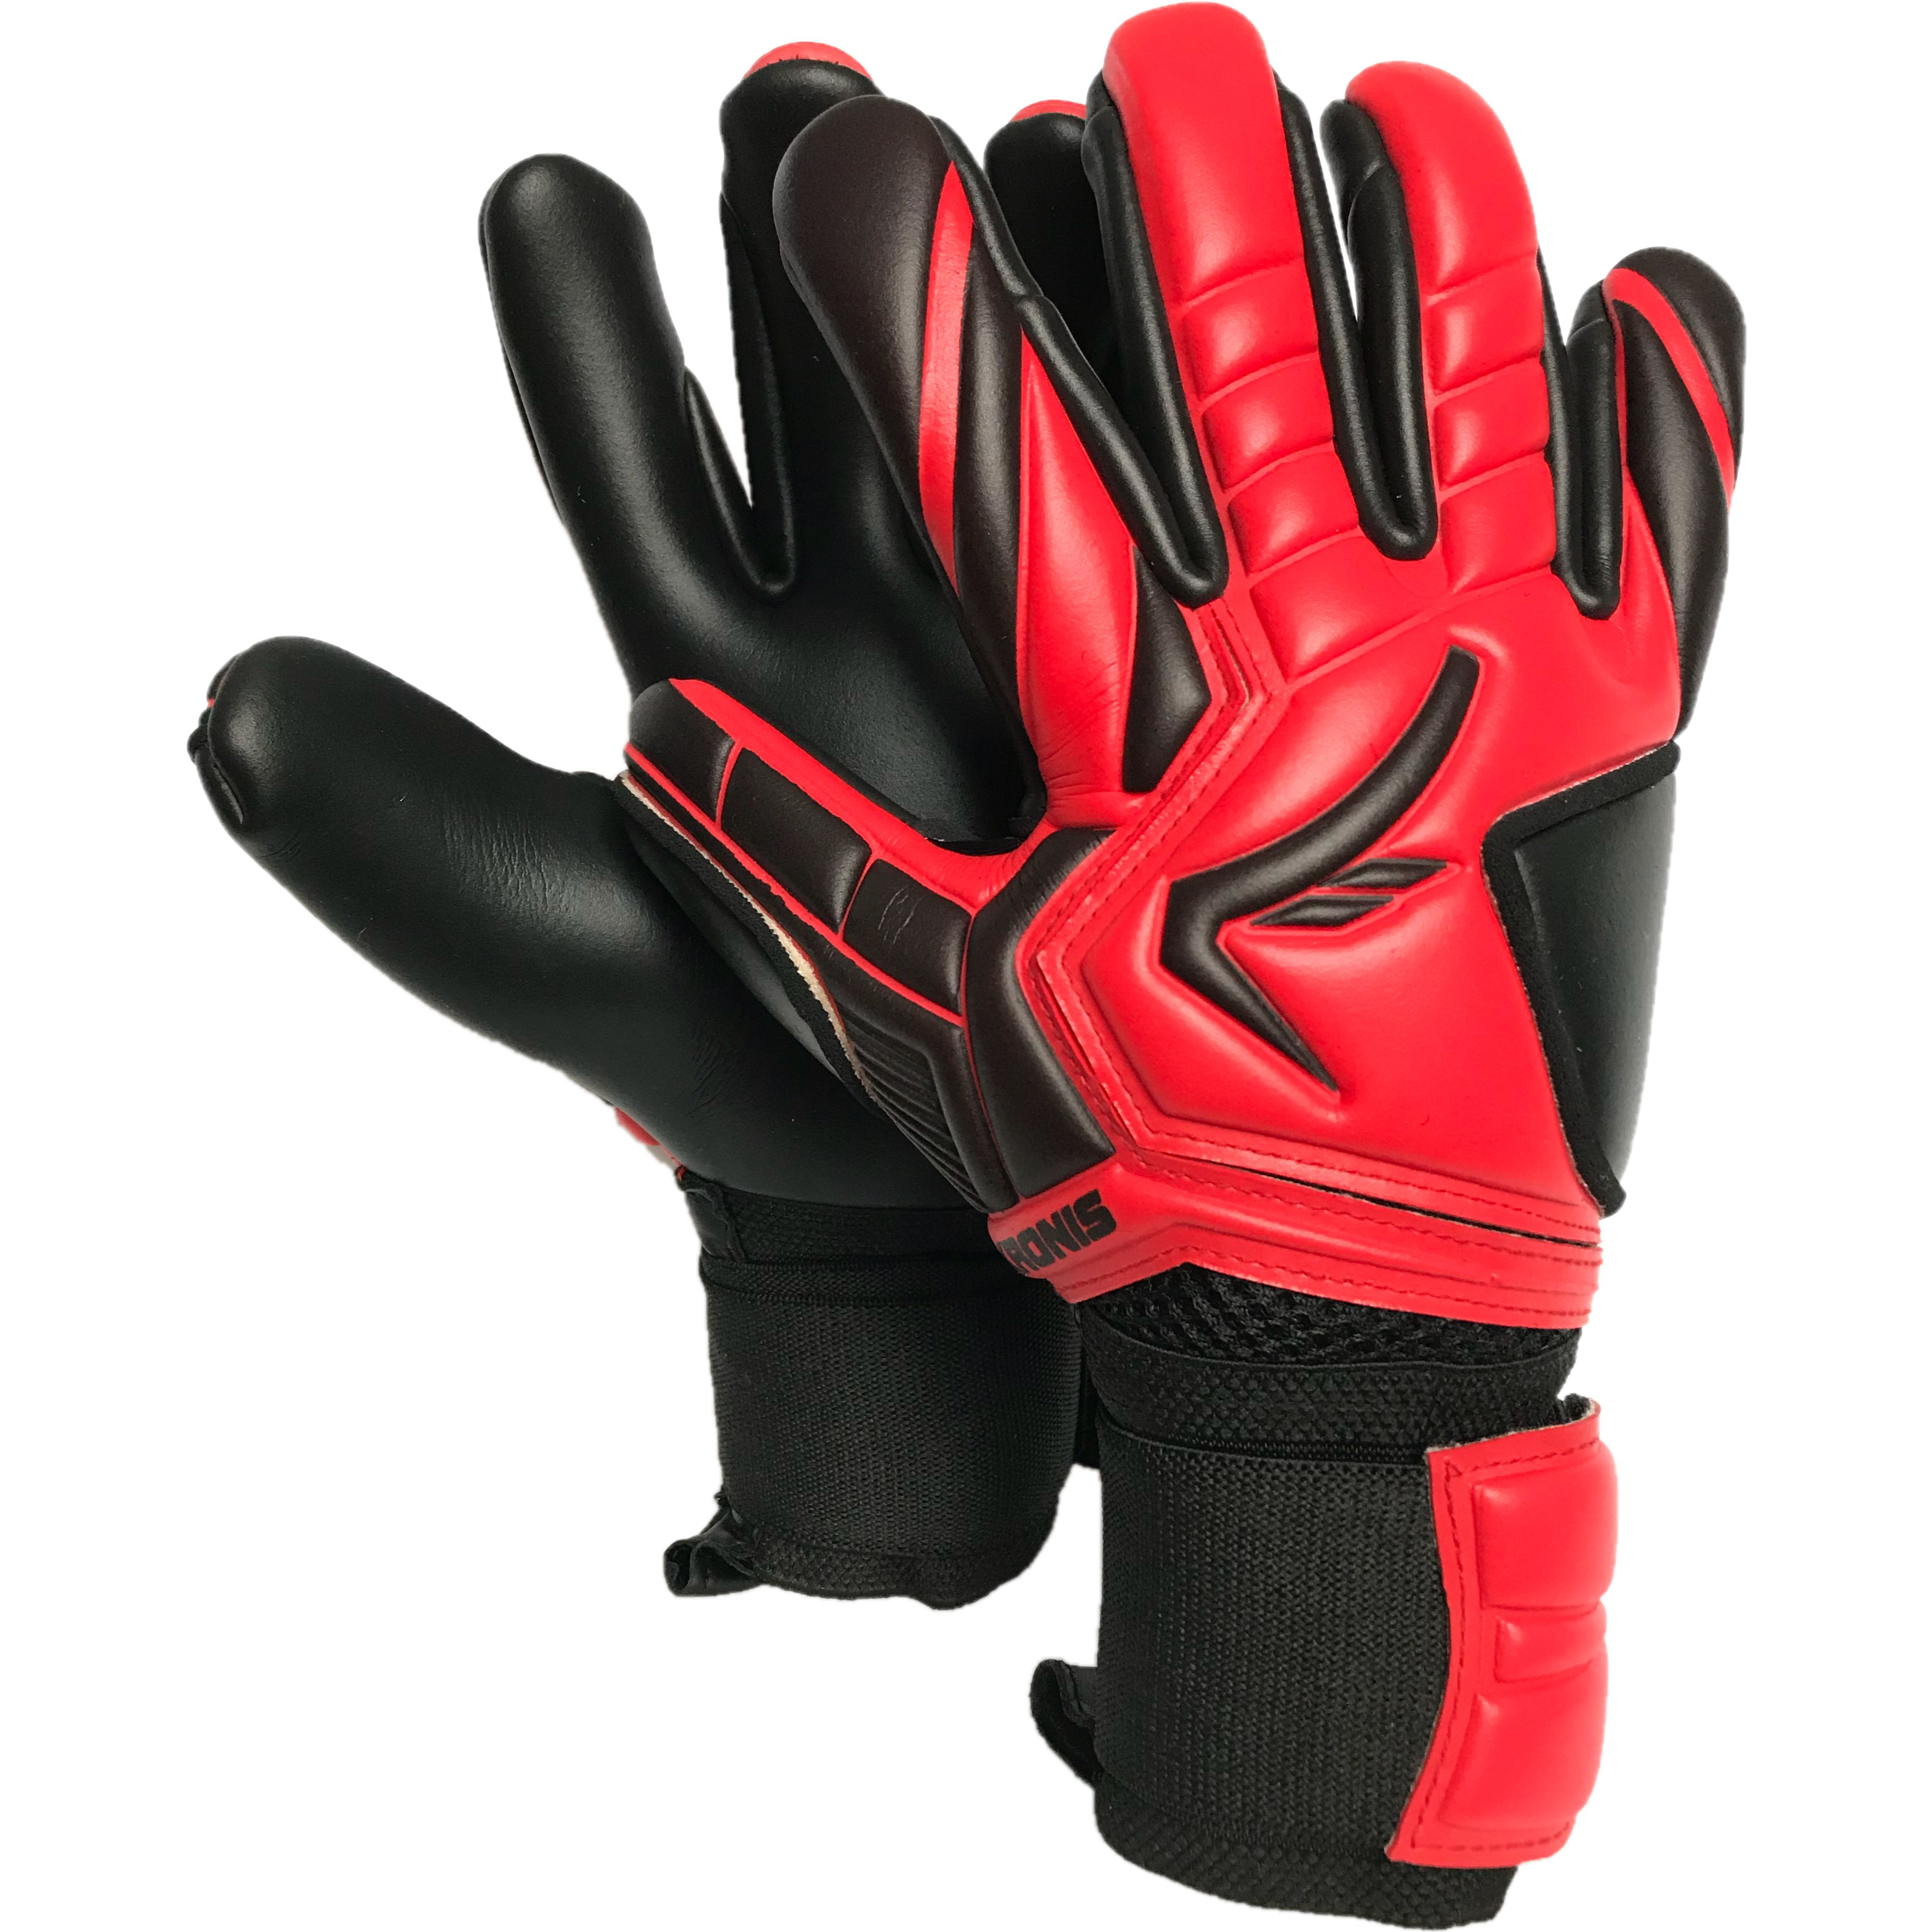 Goalkeeper Gloves Goalkeeper Gloves Gloves Athletic Wear